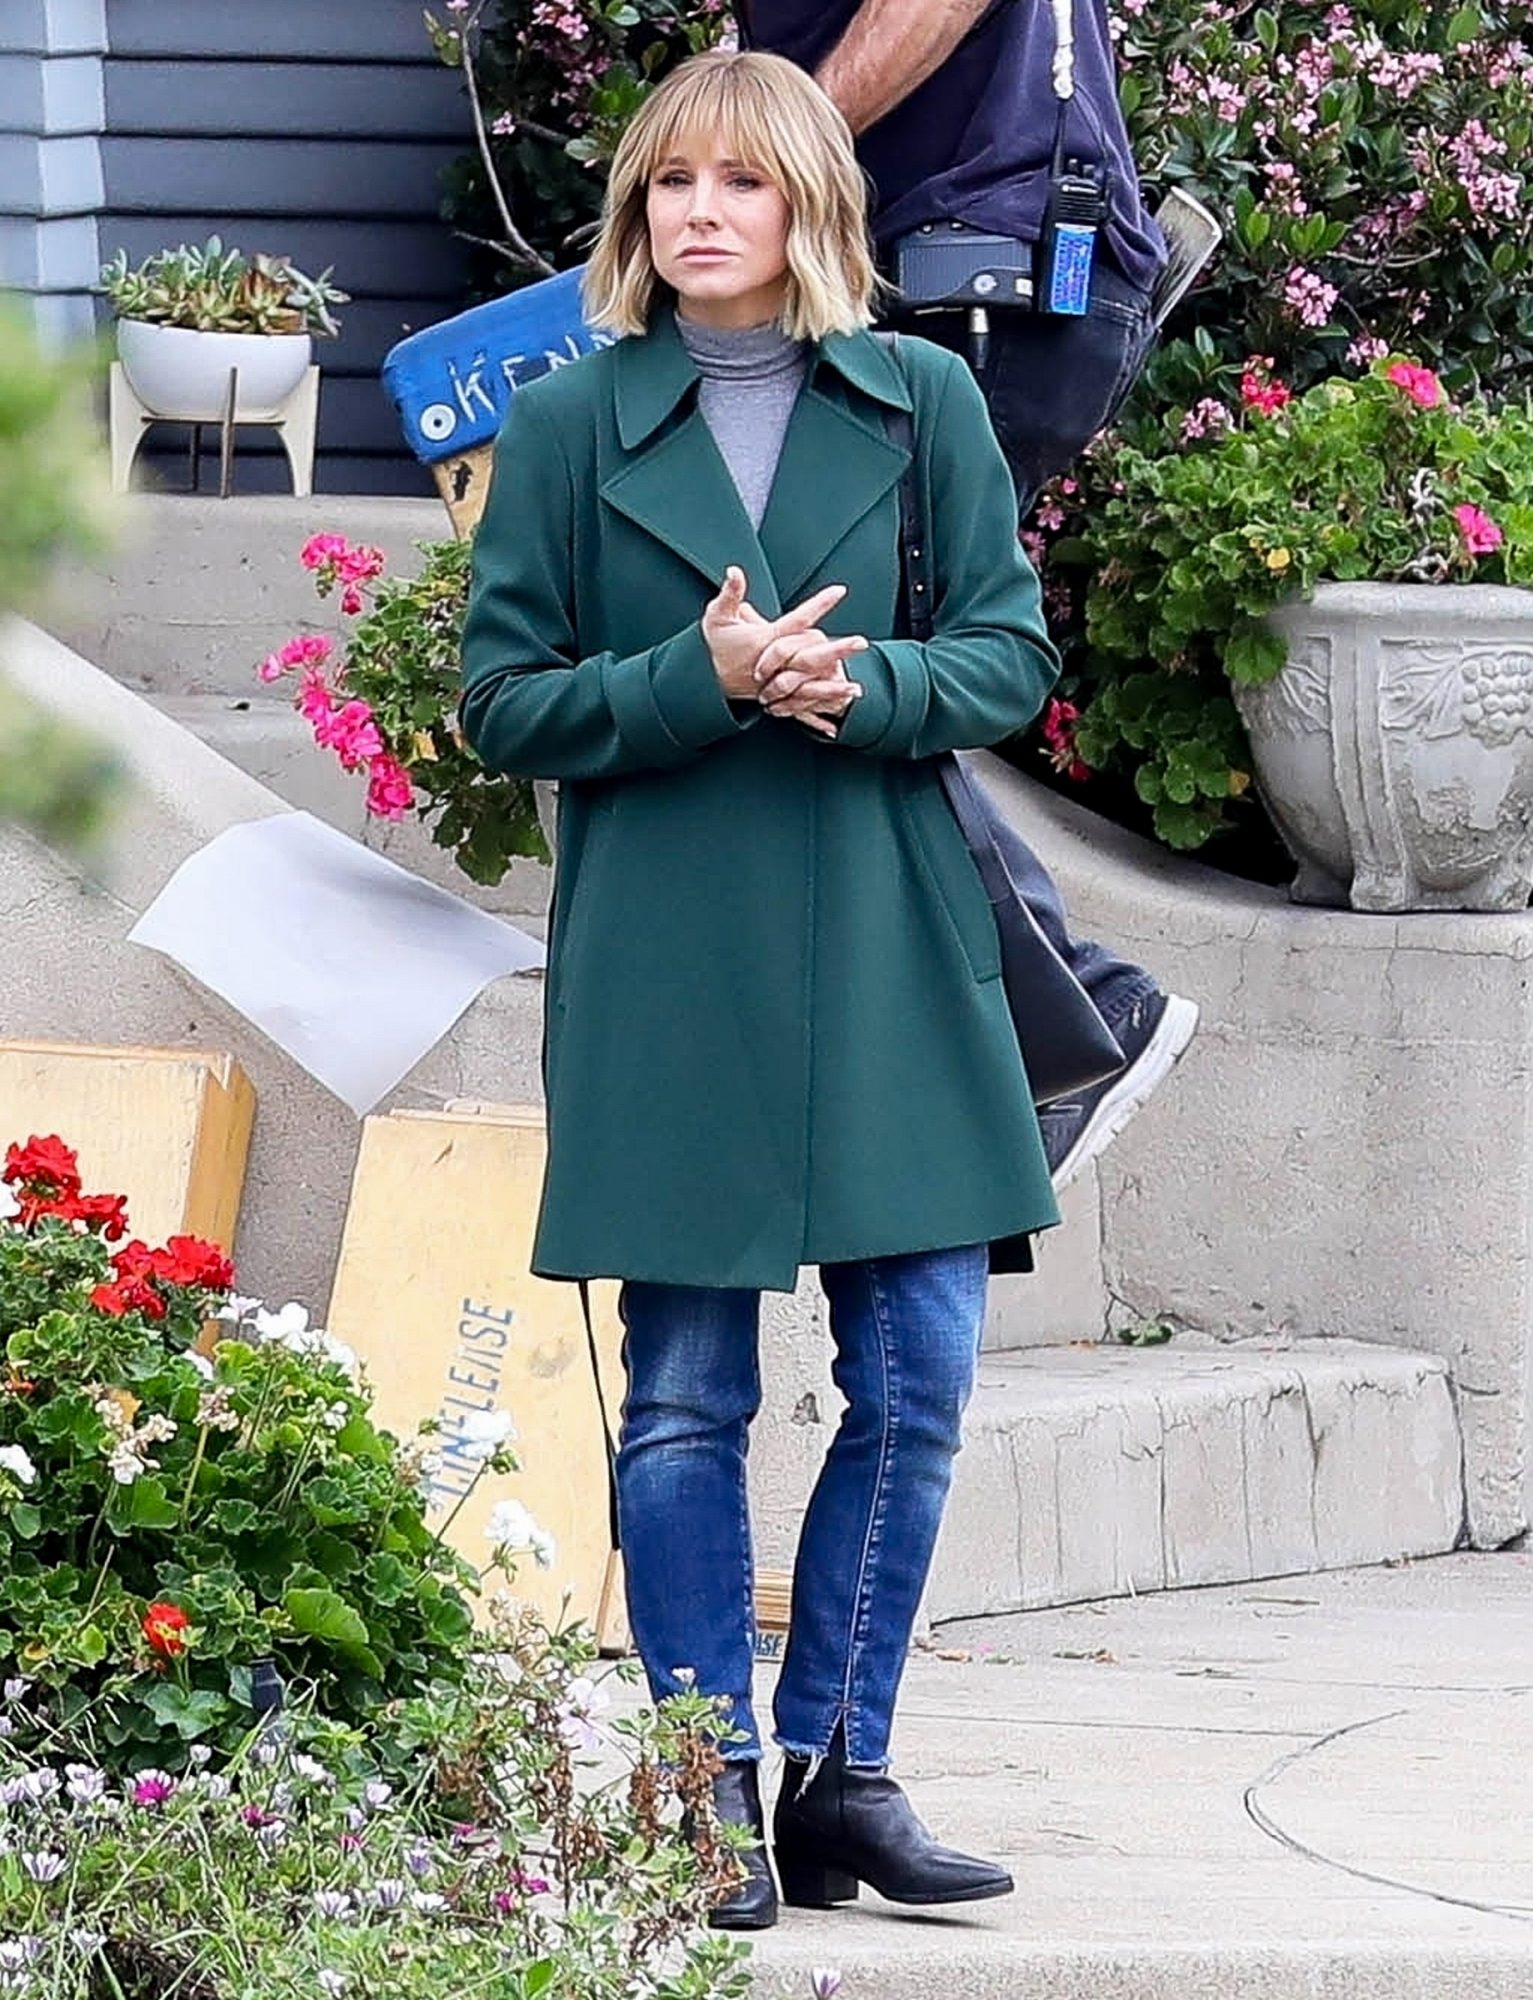 Kristen Bell is spotted on location in Los Angeles filming a scene for Netflix's mini-series 'The Woman in the House'.